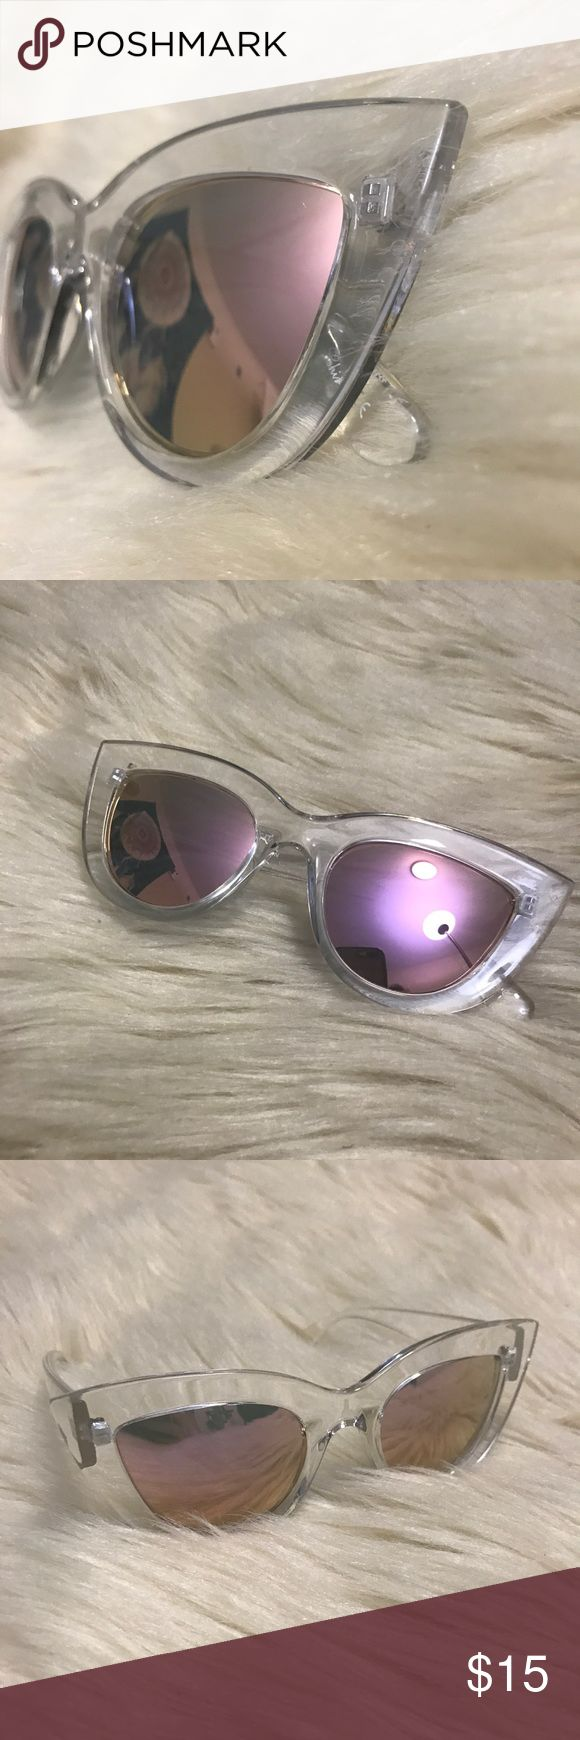 Clear rimmed mirrored cat eyed sunglasses Only worn once, super cute! 🐾PAWSitively Posh Boutique🐾 Accessories Sunglasses